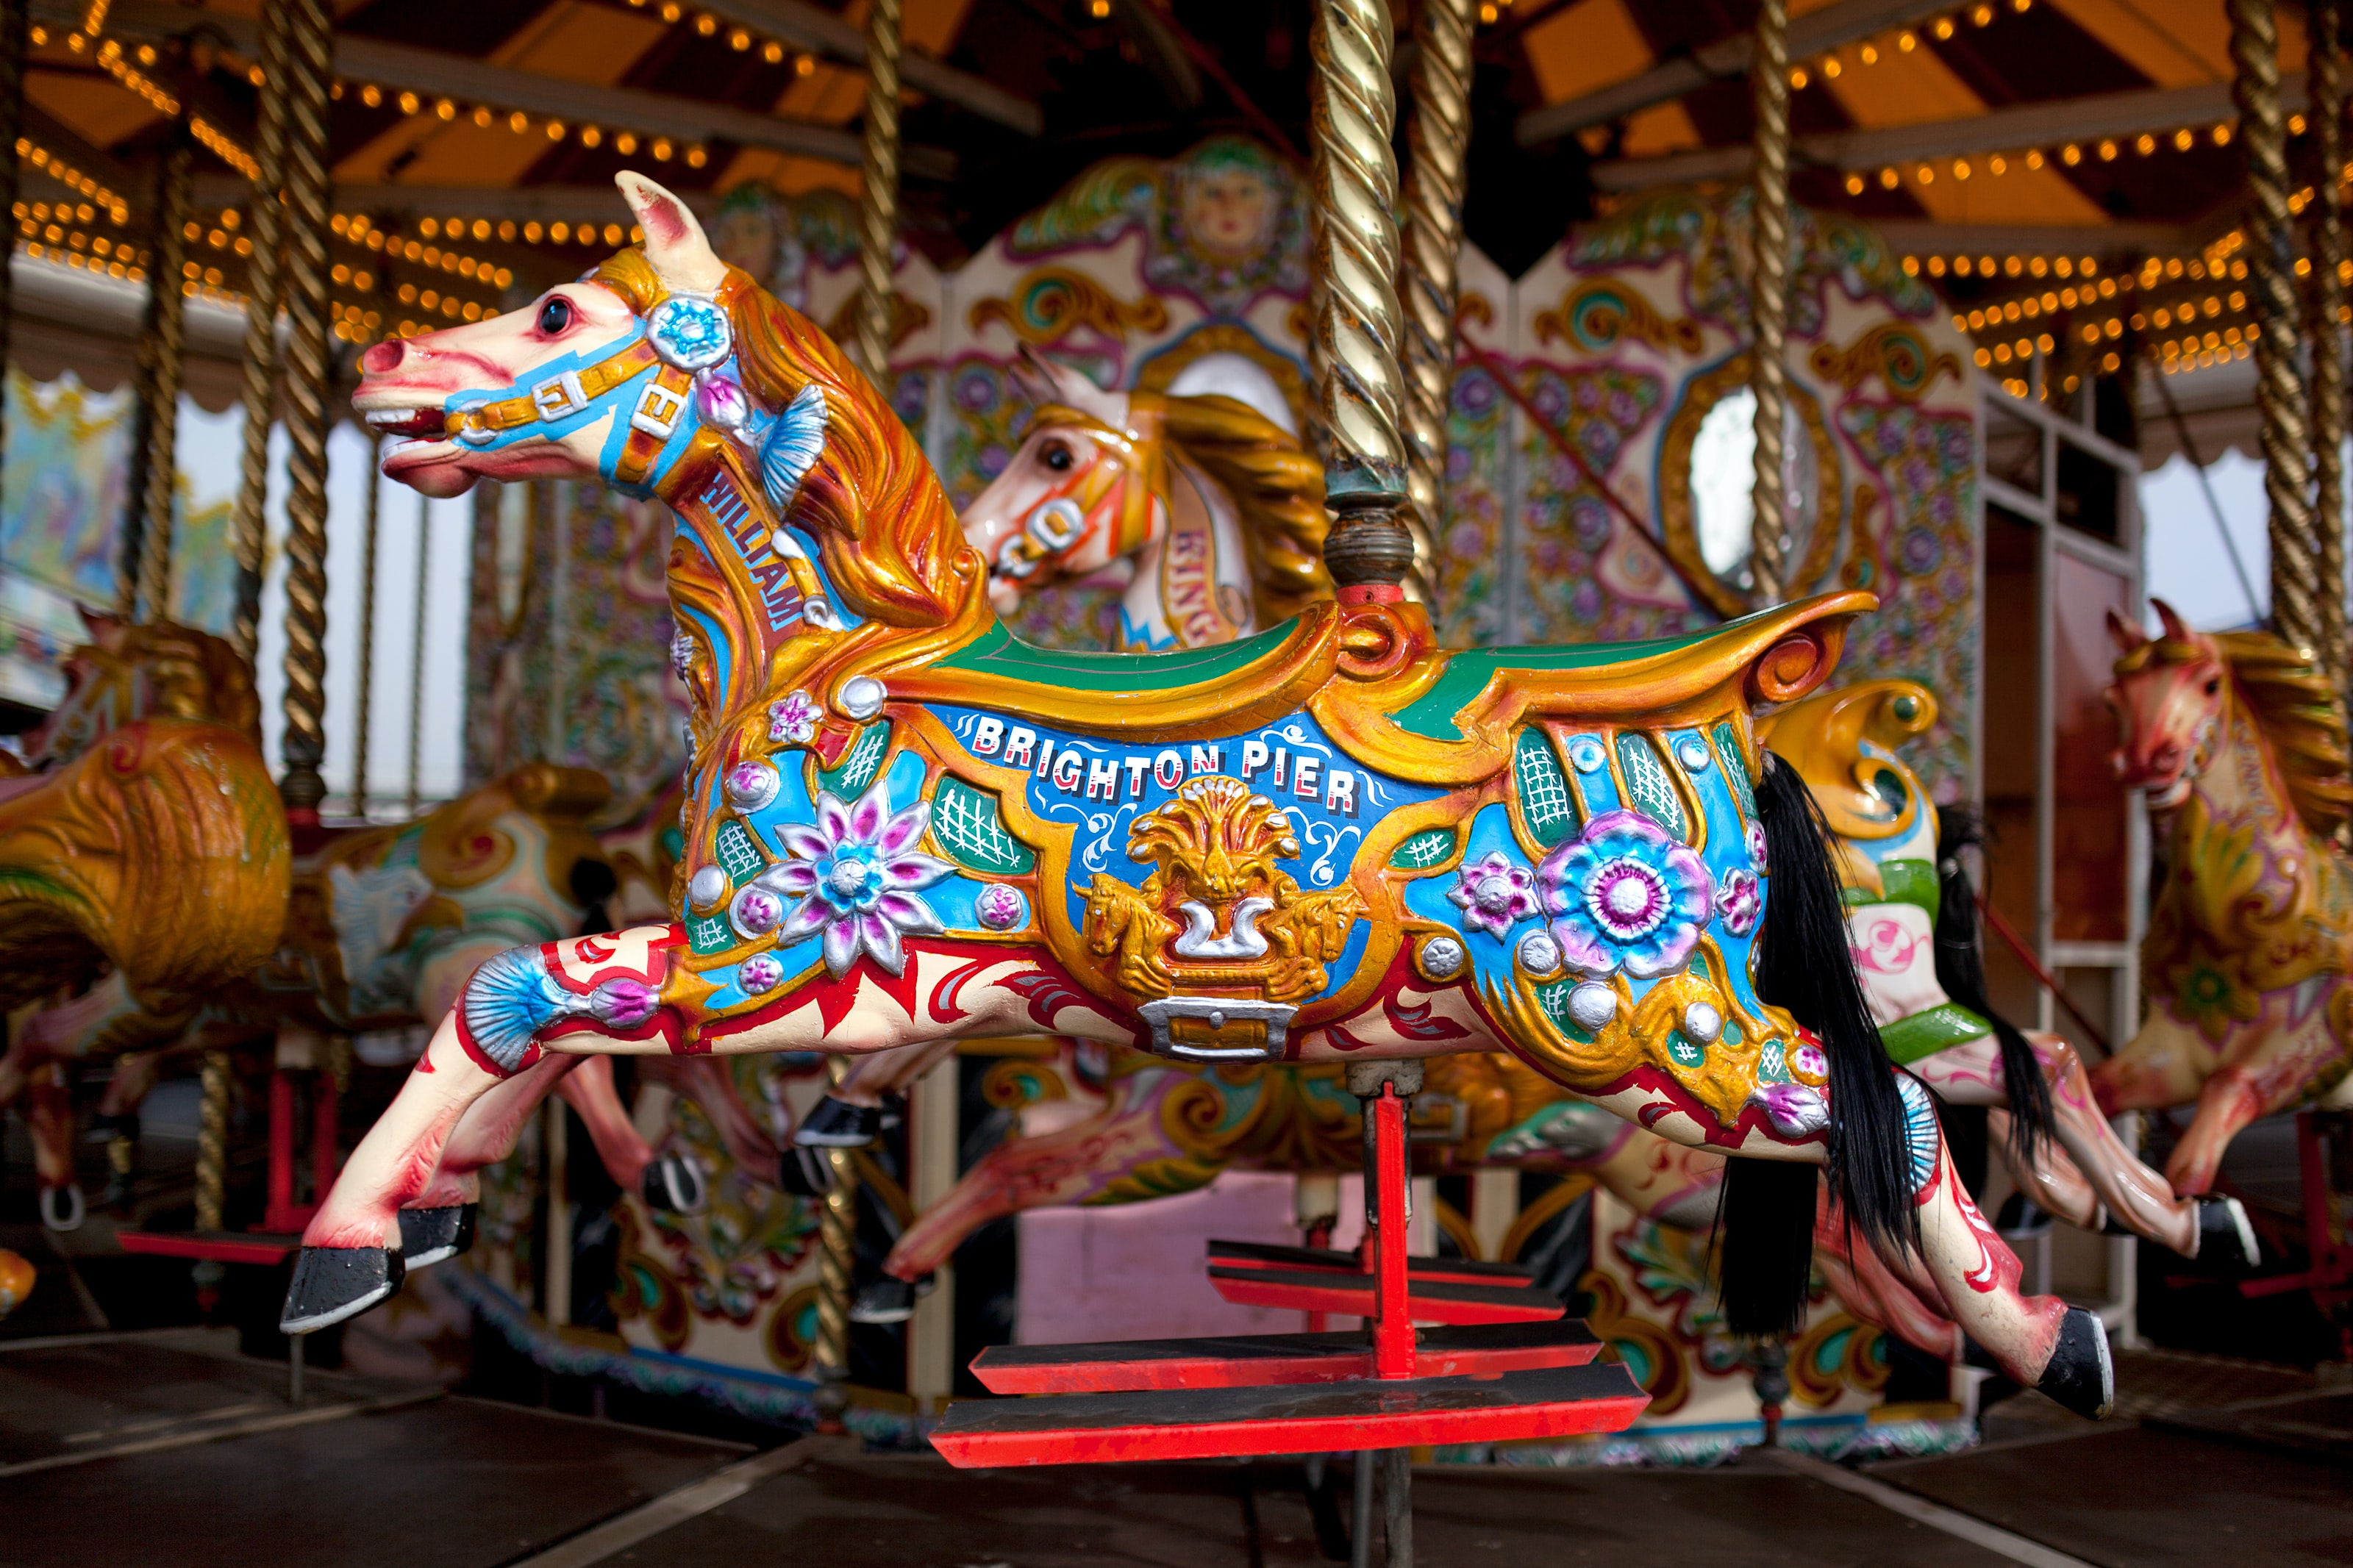 A colorful wooden horse in a merry-go-round in Brighton